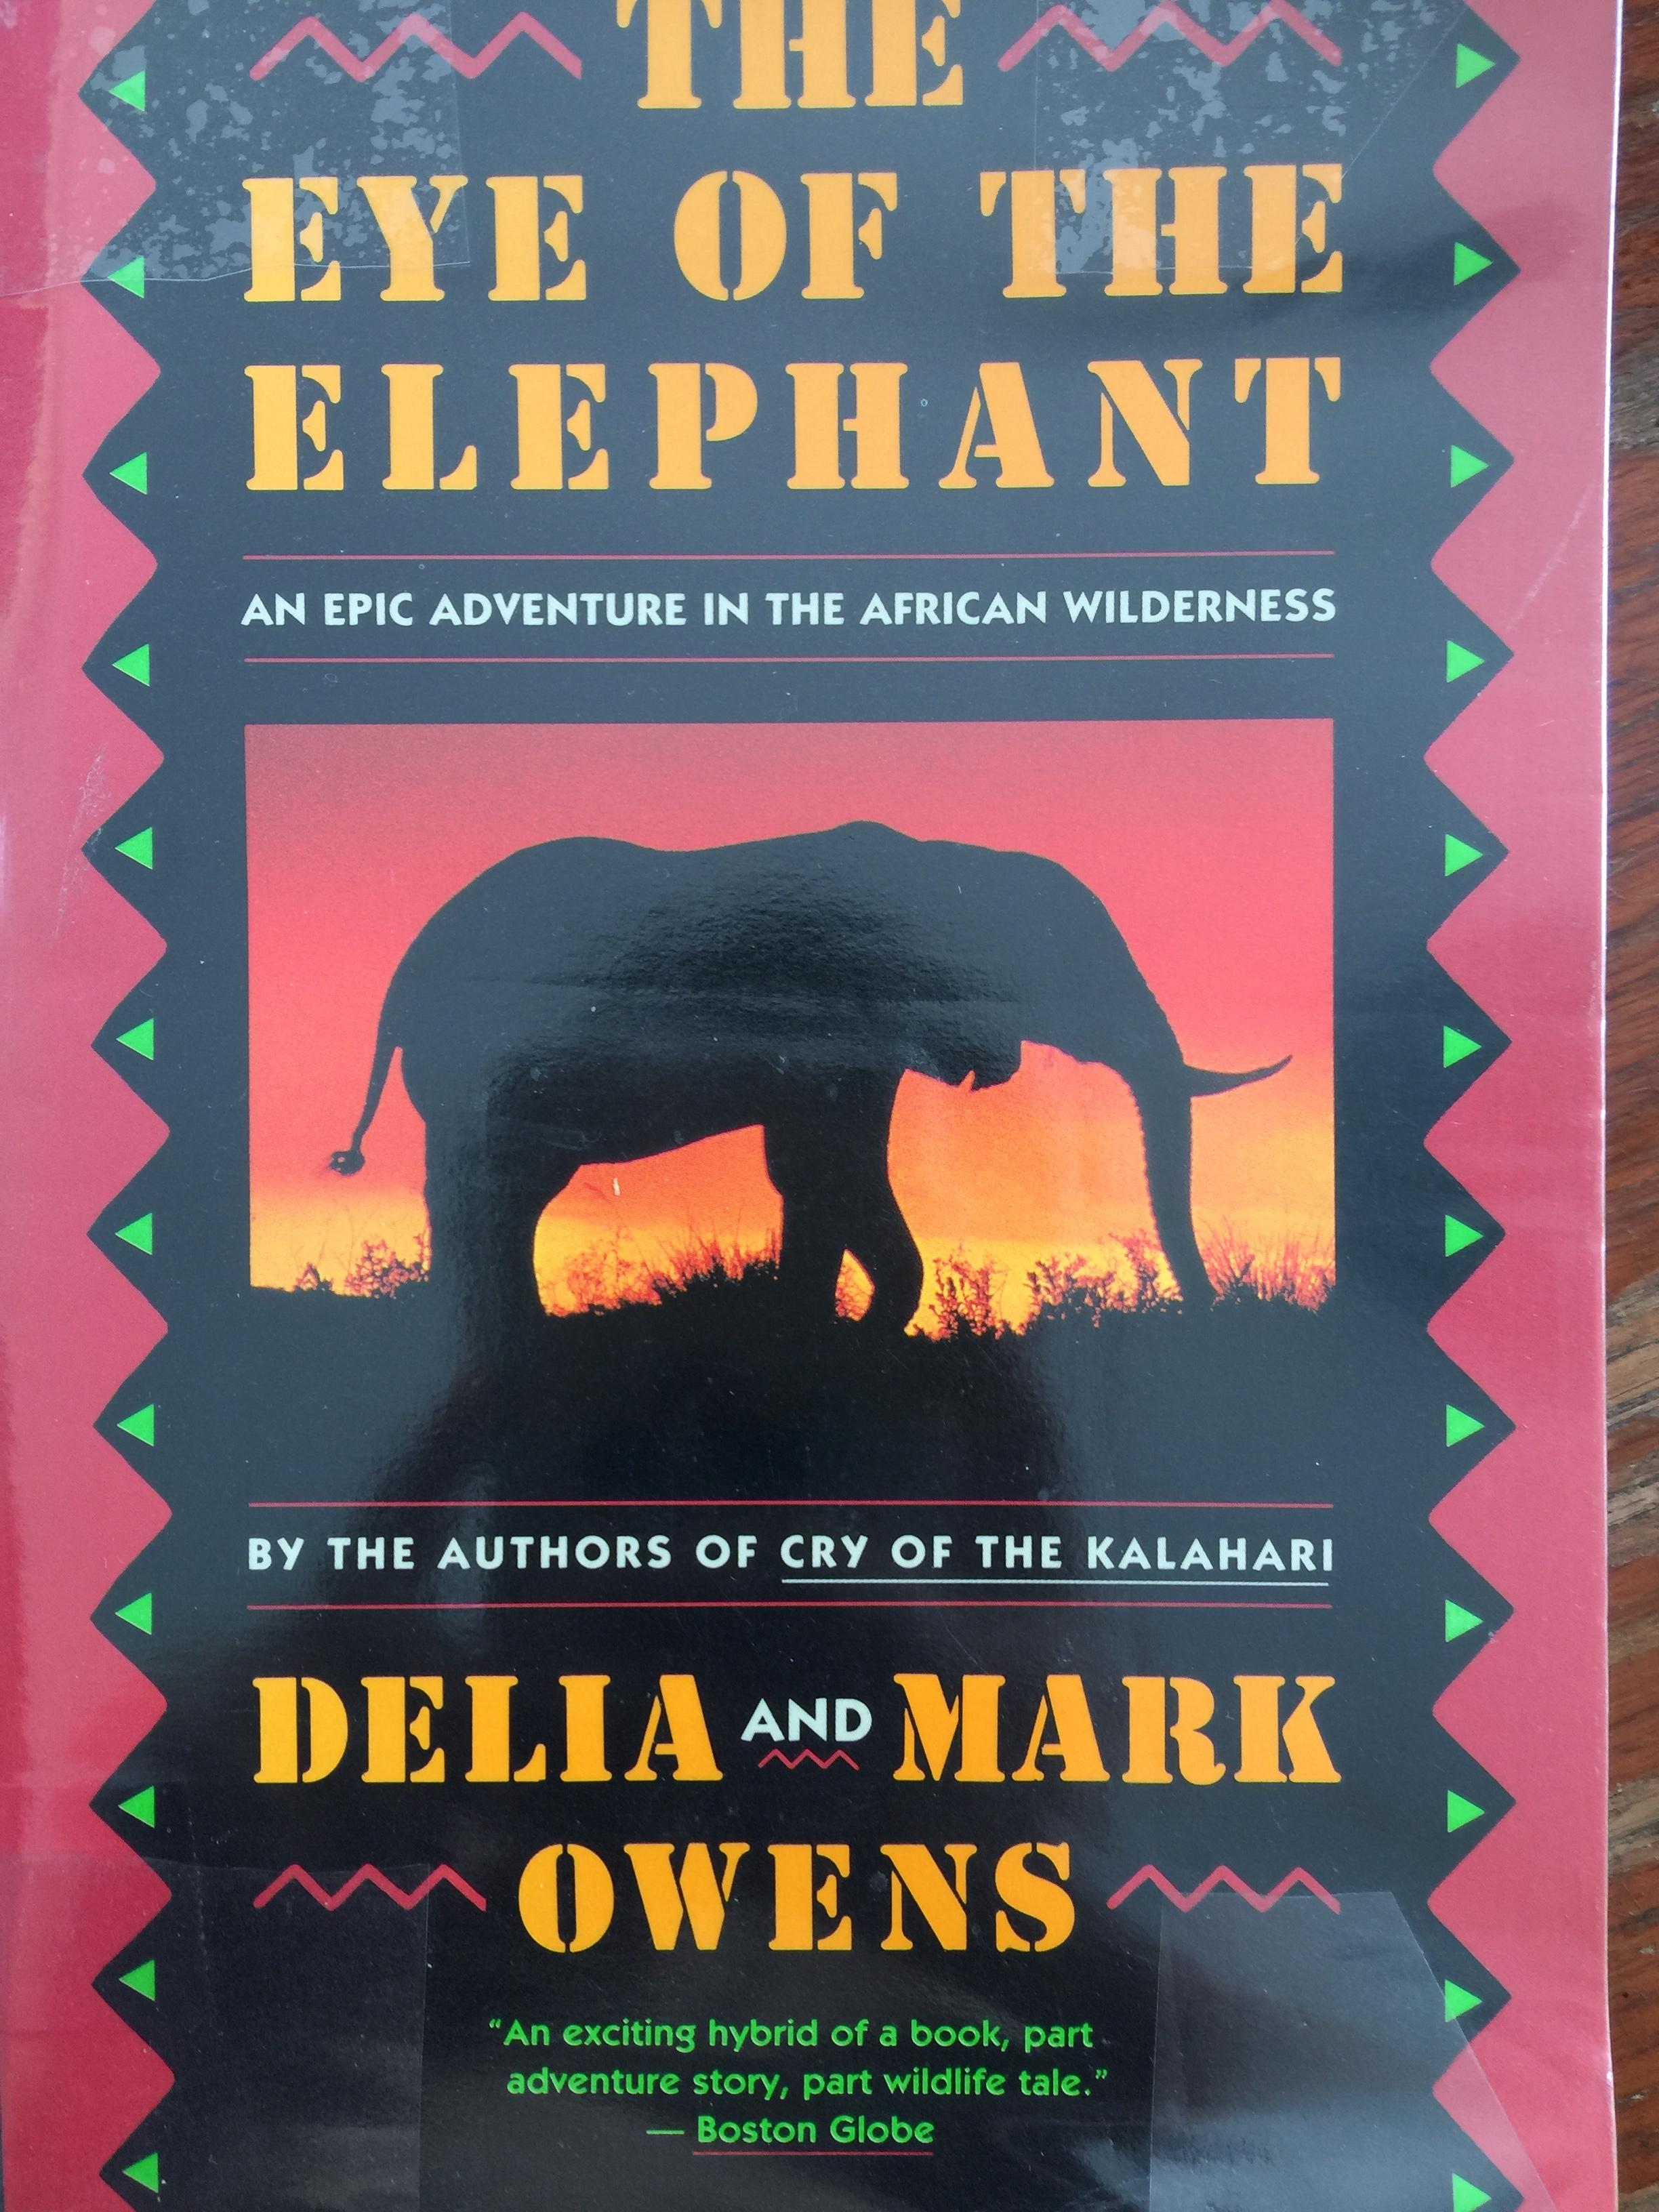 The Eye of the ELEPHANT. an epic adventure in the African wilderness. by the authors of cry or the Kalahari. Delia and Mark Owens